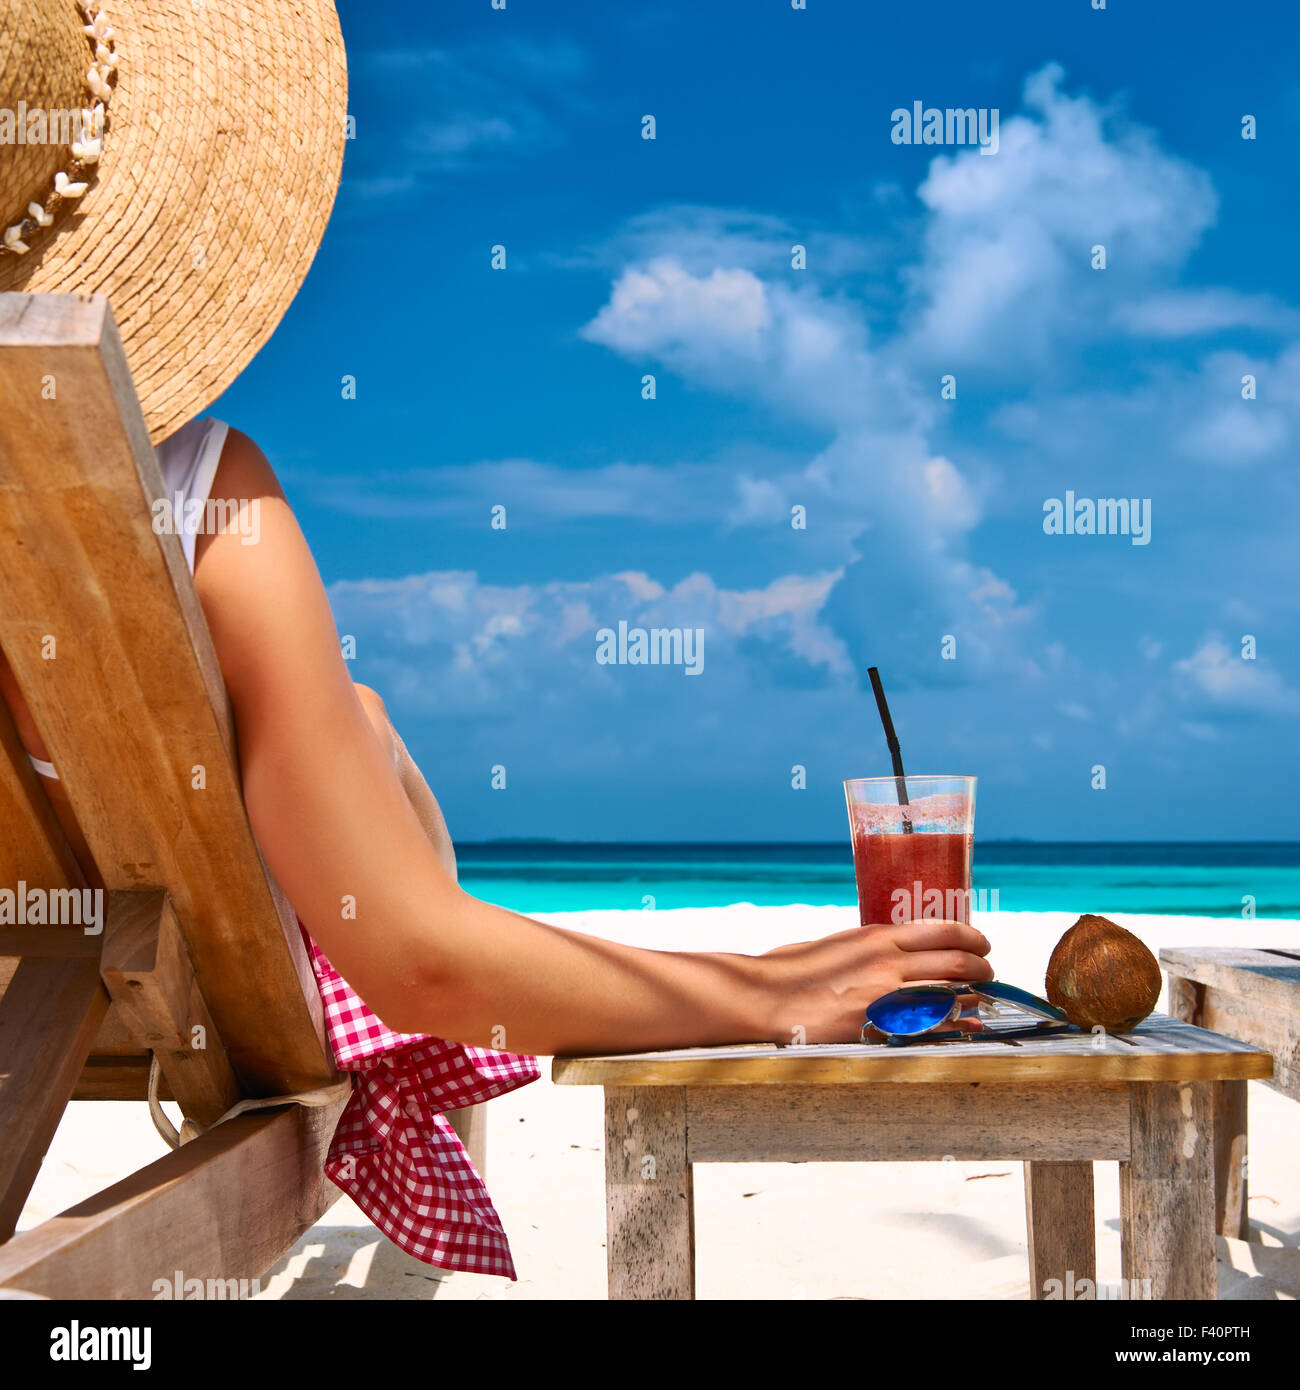 Woman at beach with chaise-lounges - Stock Image